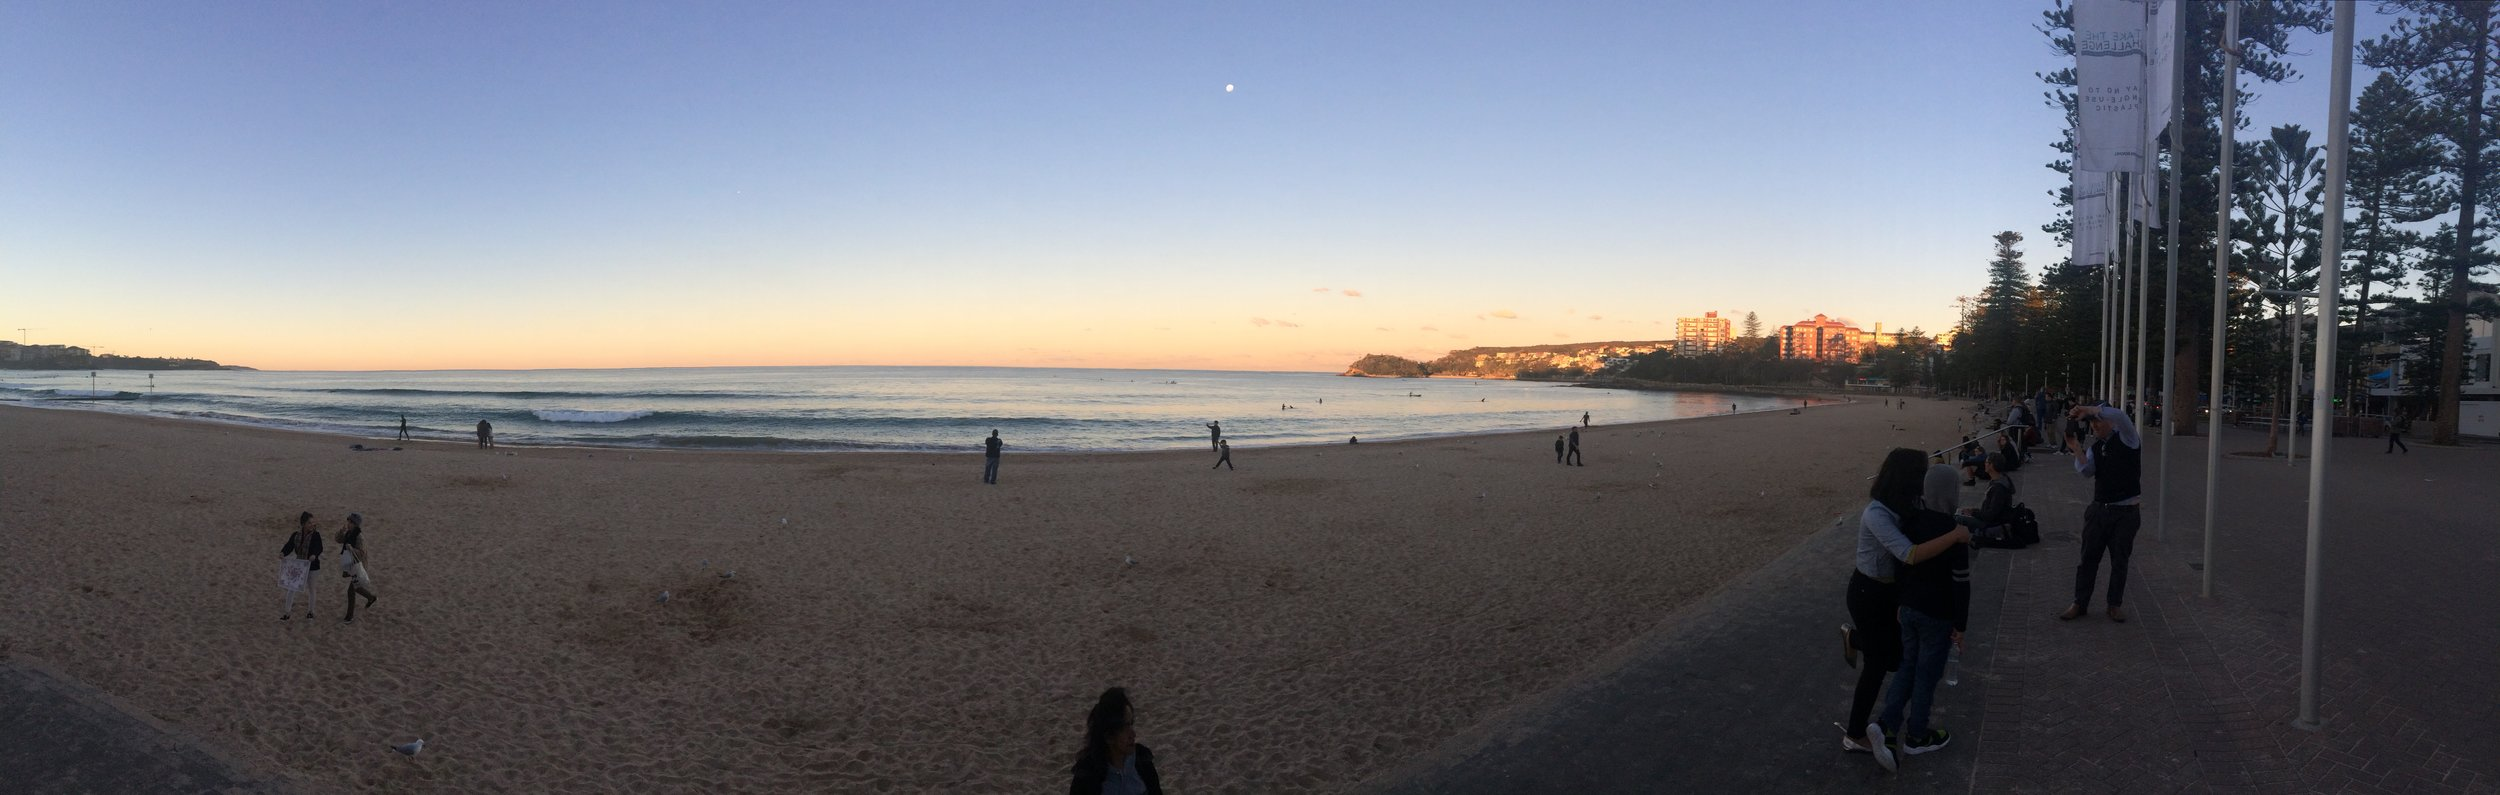 Sunset on Manly Beach